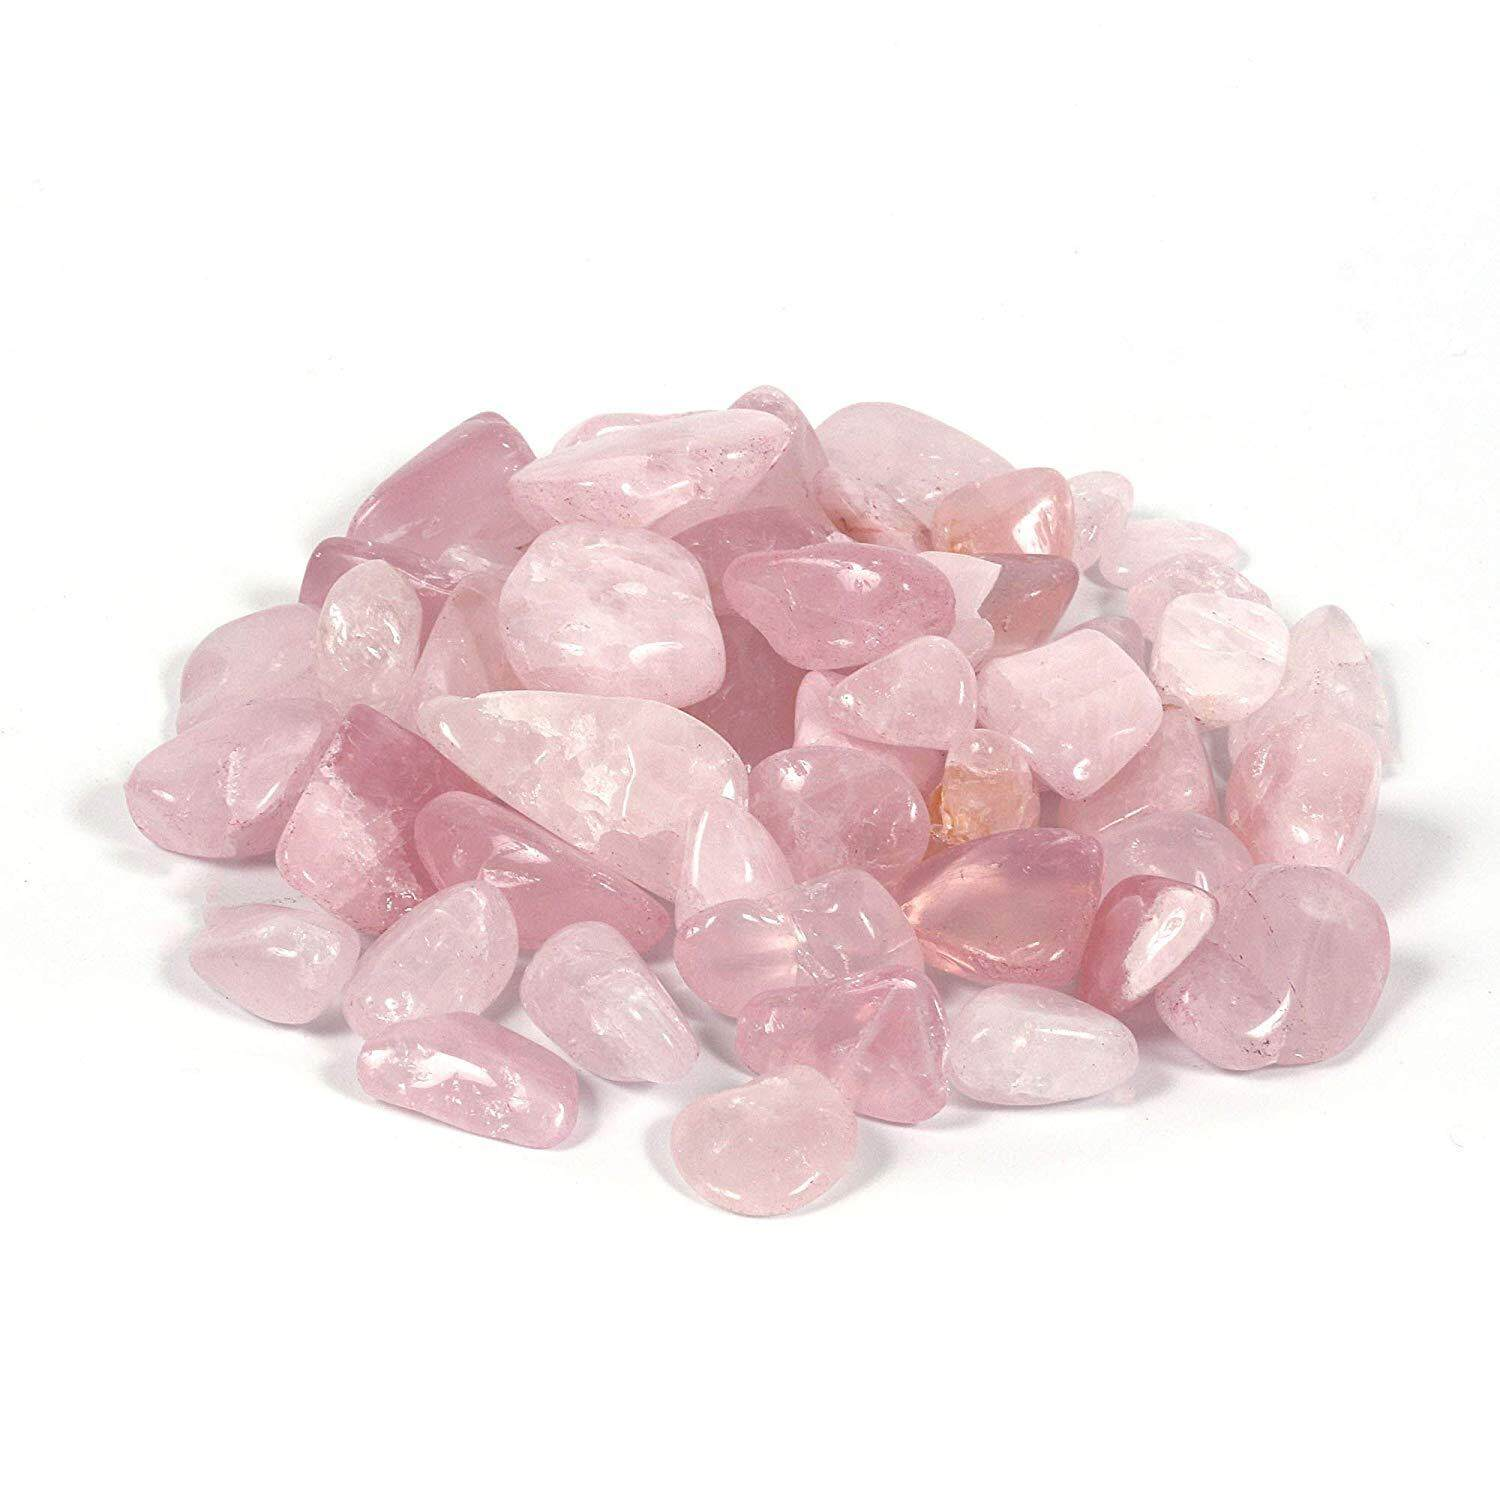 Natural Pink Rose Quartz Crystal/ Mineral Crystal/ Crystal Stone/ Healing Material Crafts (Size M)